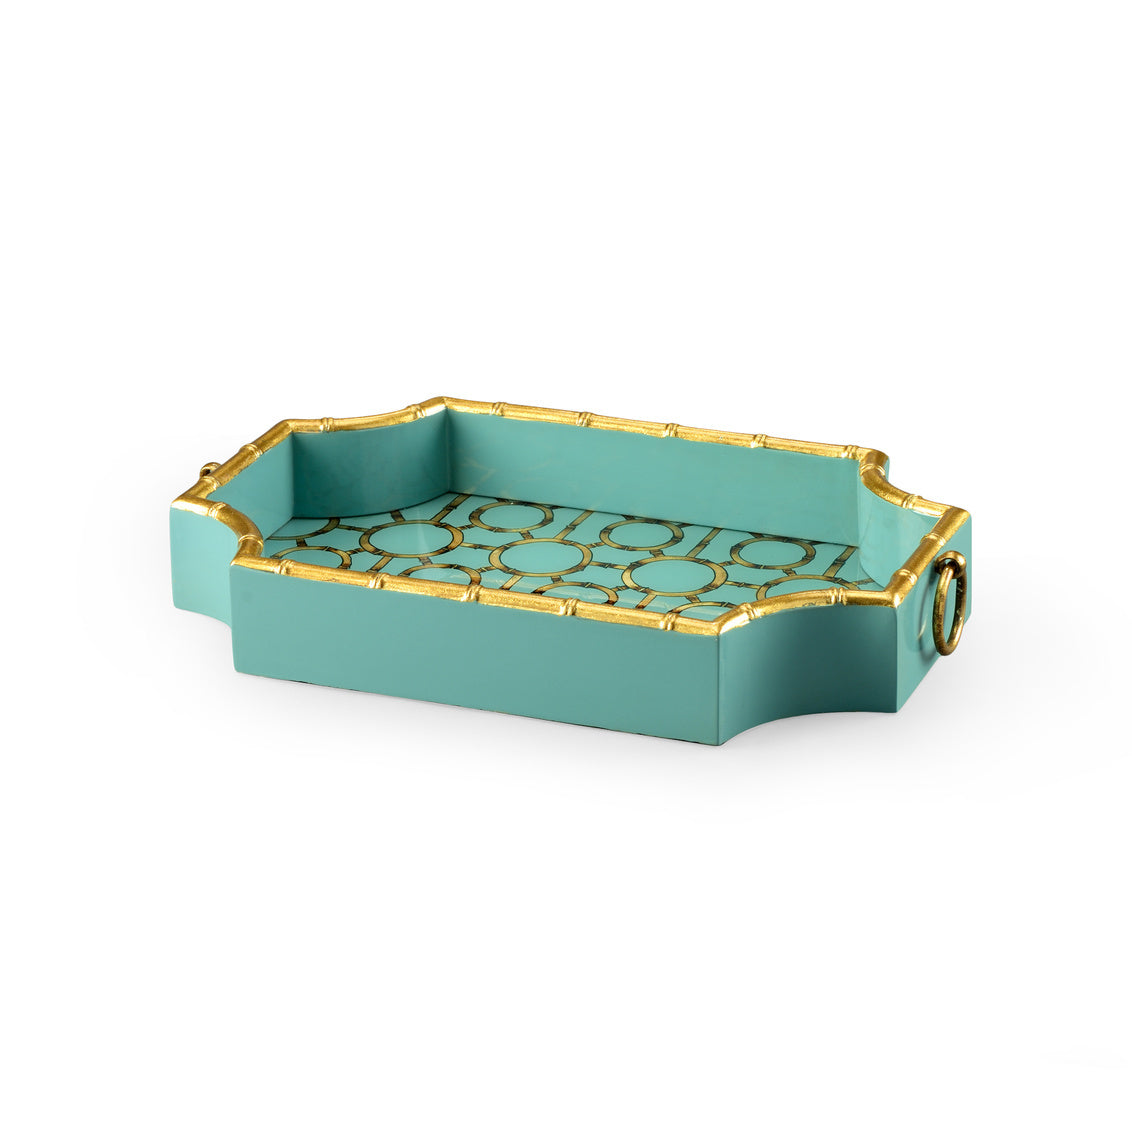 Chelsea House Bamboo Tray - Teal 382508